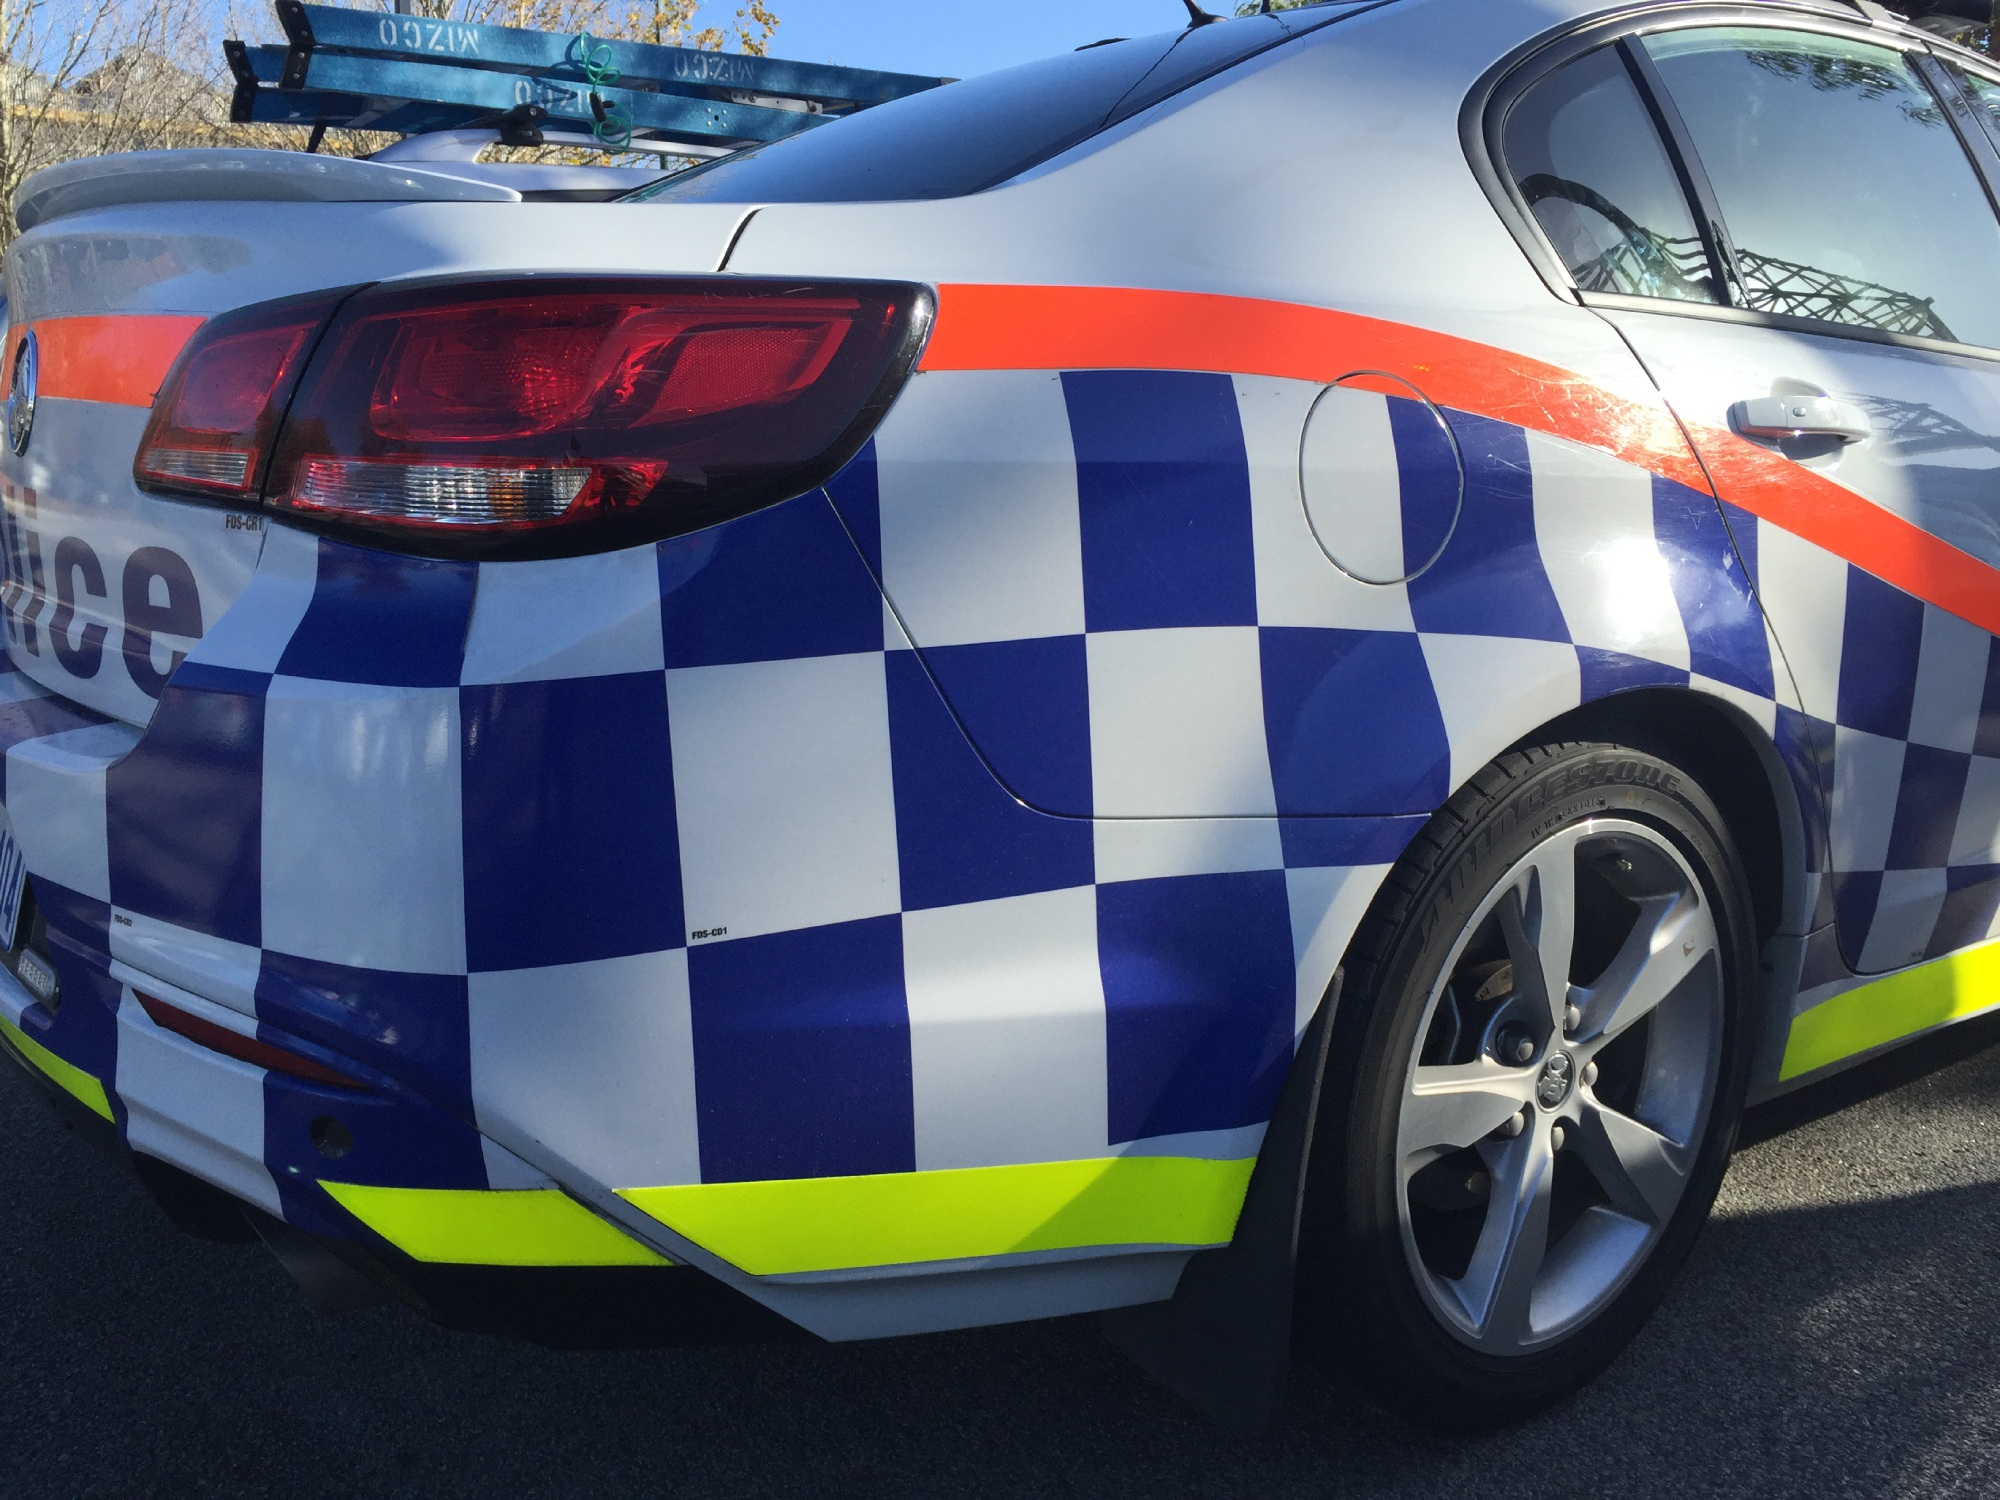 Mandurah: Stranger danger warning issued by police after two incidents